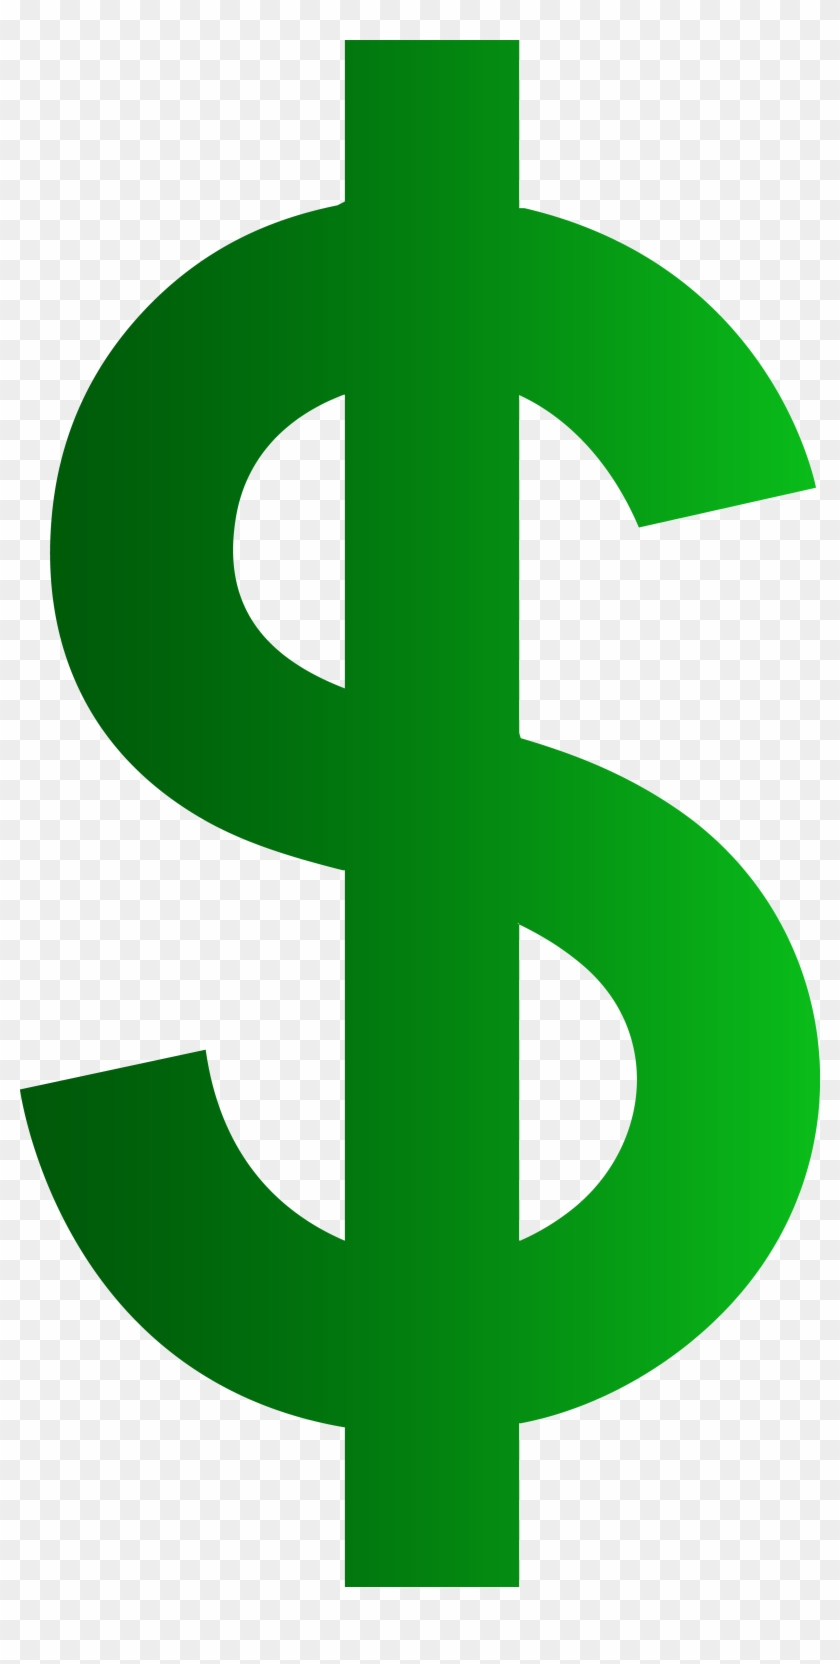 hight resolution of dollar money clipart dollar sign no background 824481